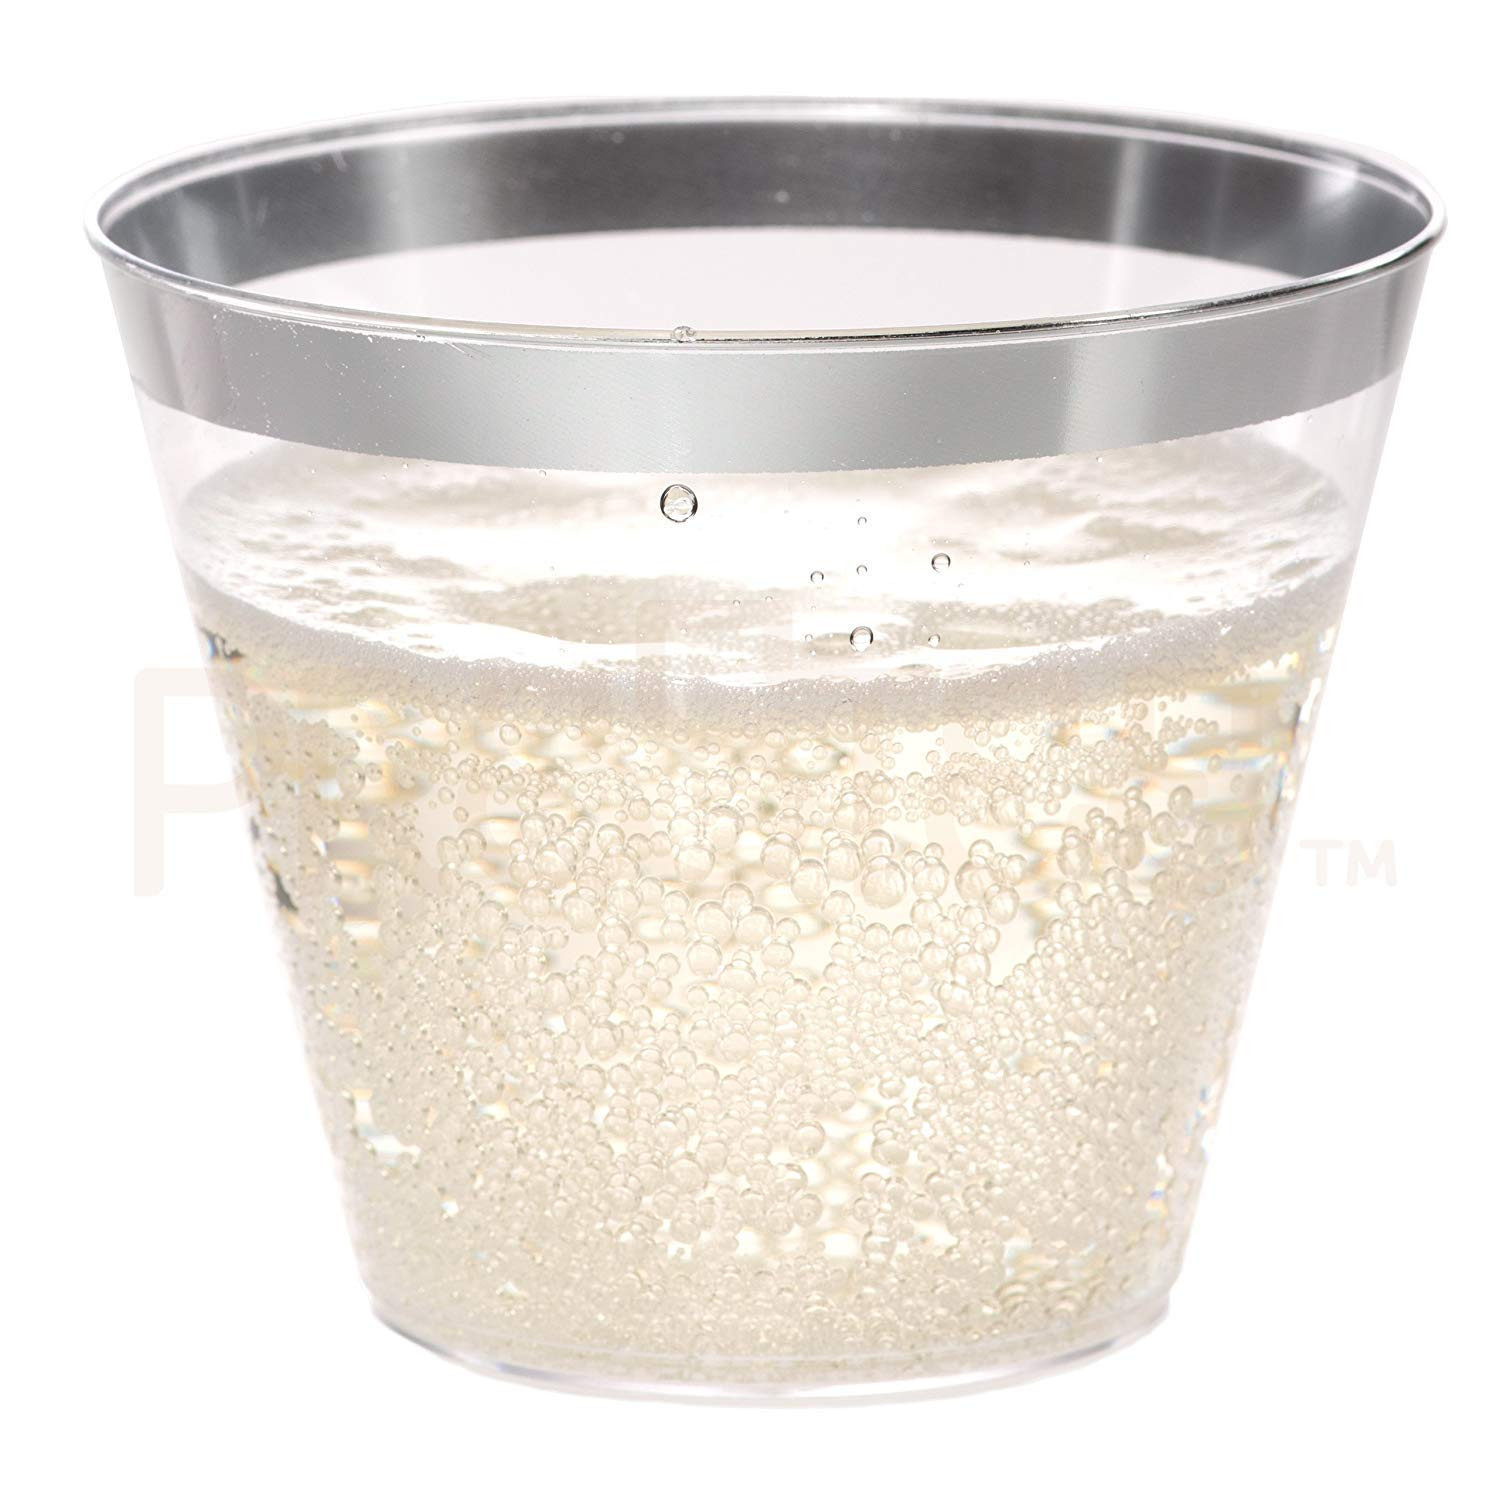 tall square glass vases wholesale of amazon com silver plastic cups 5 oz 100 pack hard clear intended for cups disposable party cups fancy wedding tumblers nice silver rim plastic cups elegant decoration cups plastic tumblers bulk kitchen dining